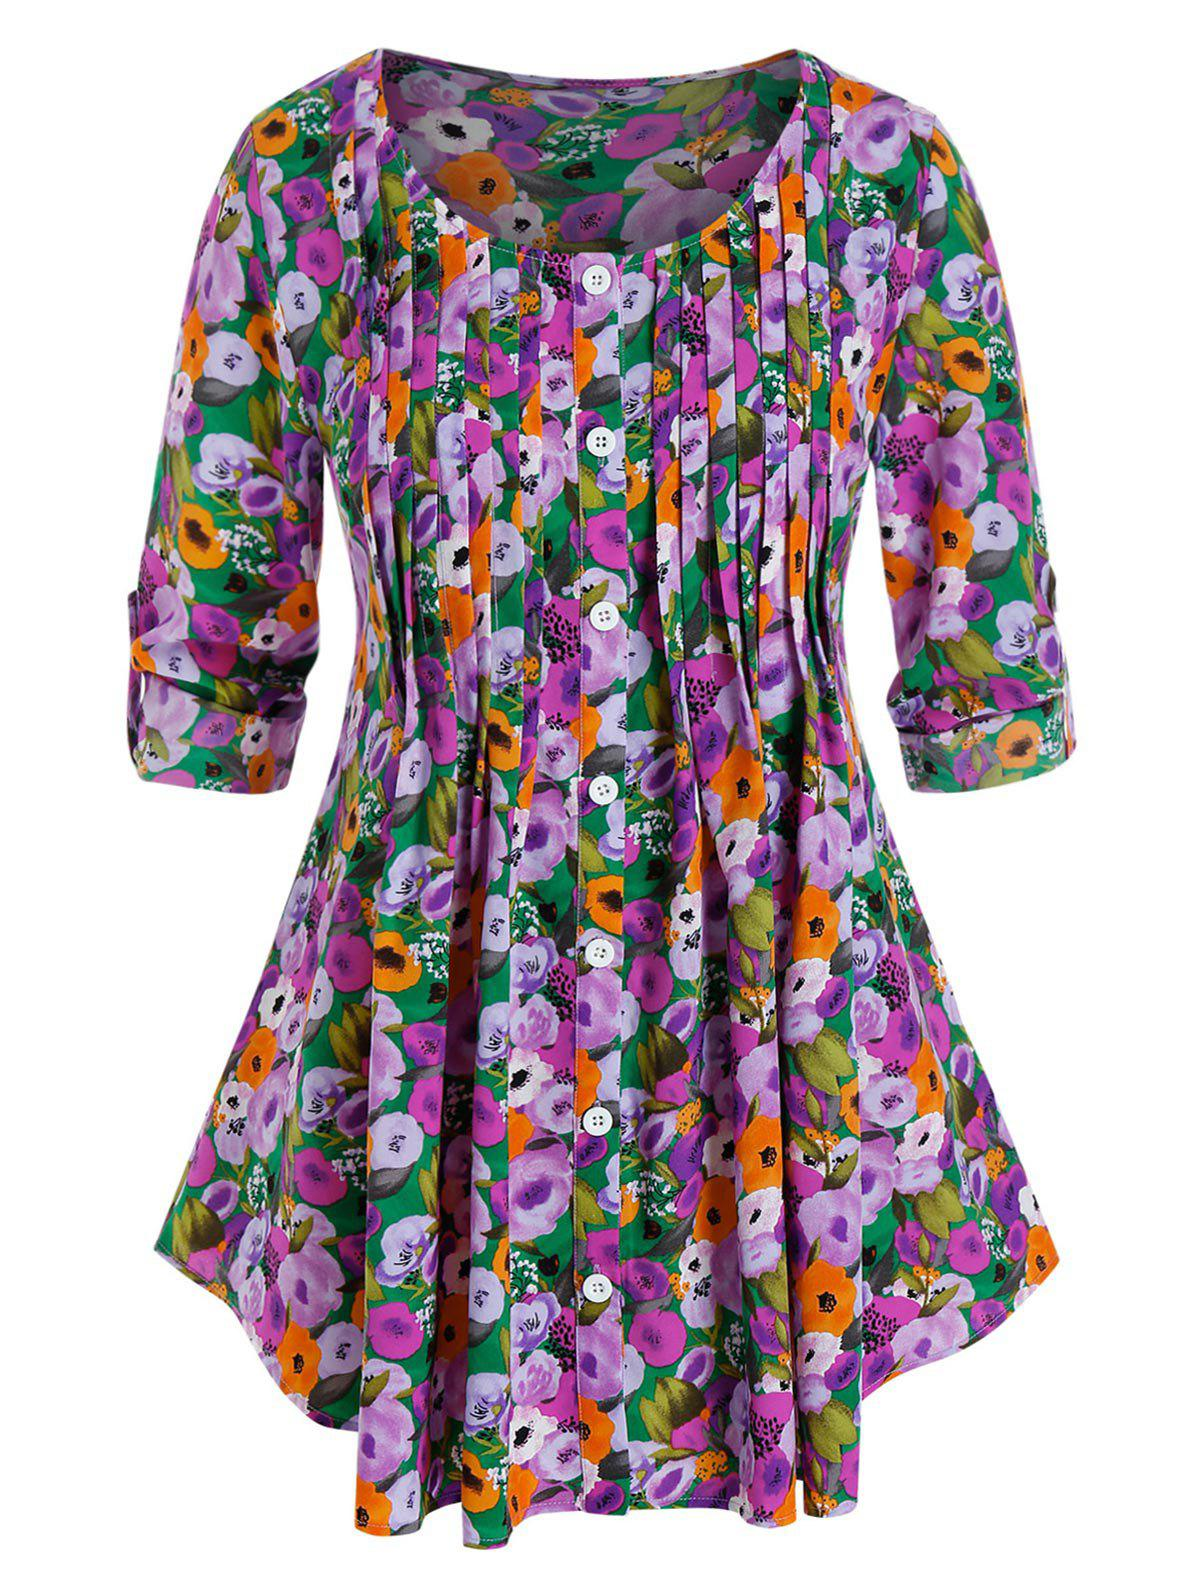 Plus Size Flower Print Pleated Tab Sleeve Tunic Blouse - multicolor 5X